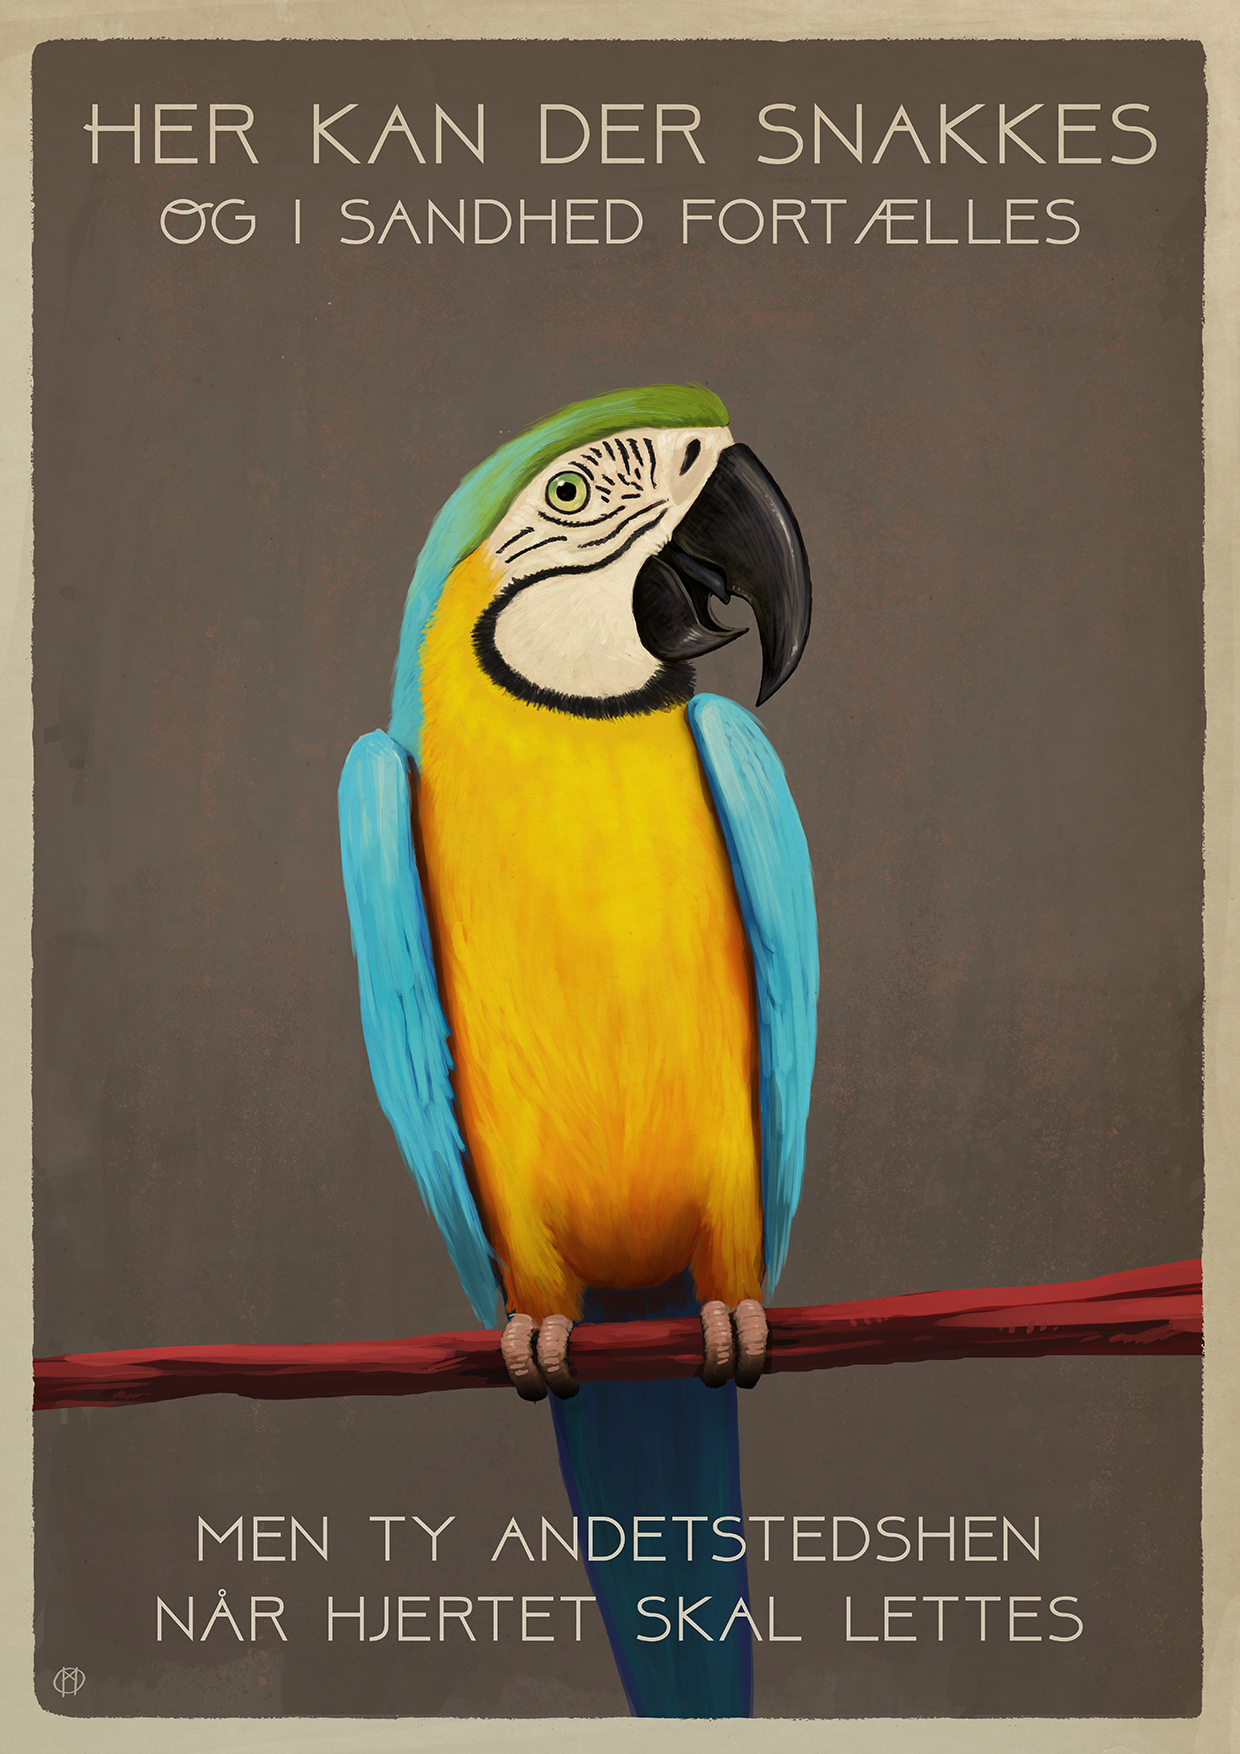 Office rule: The parrot